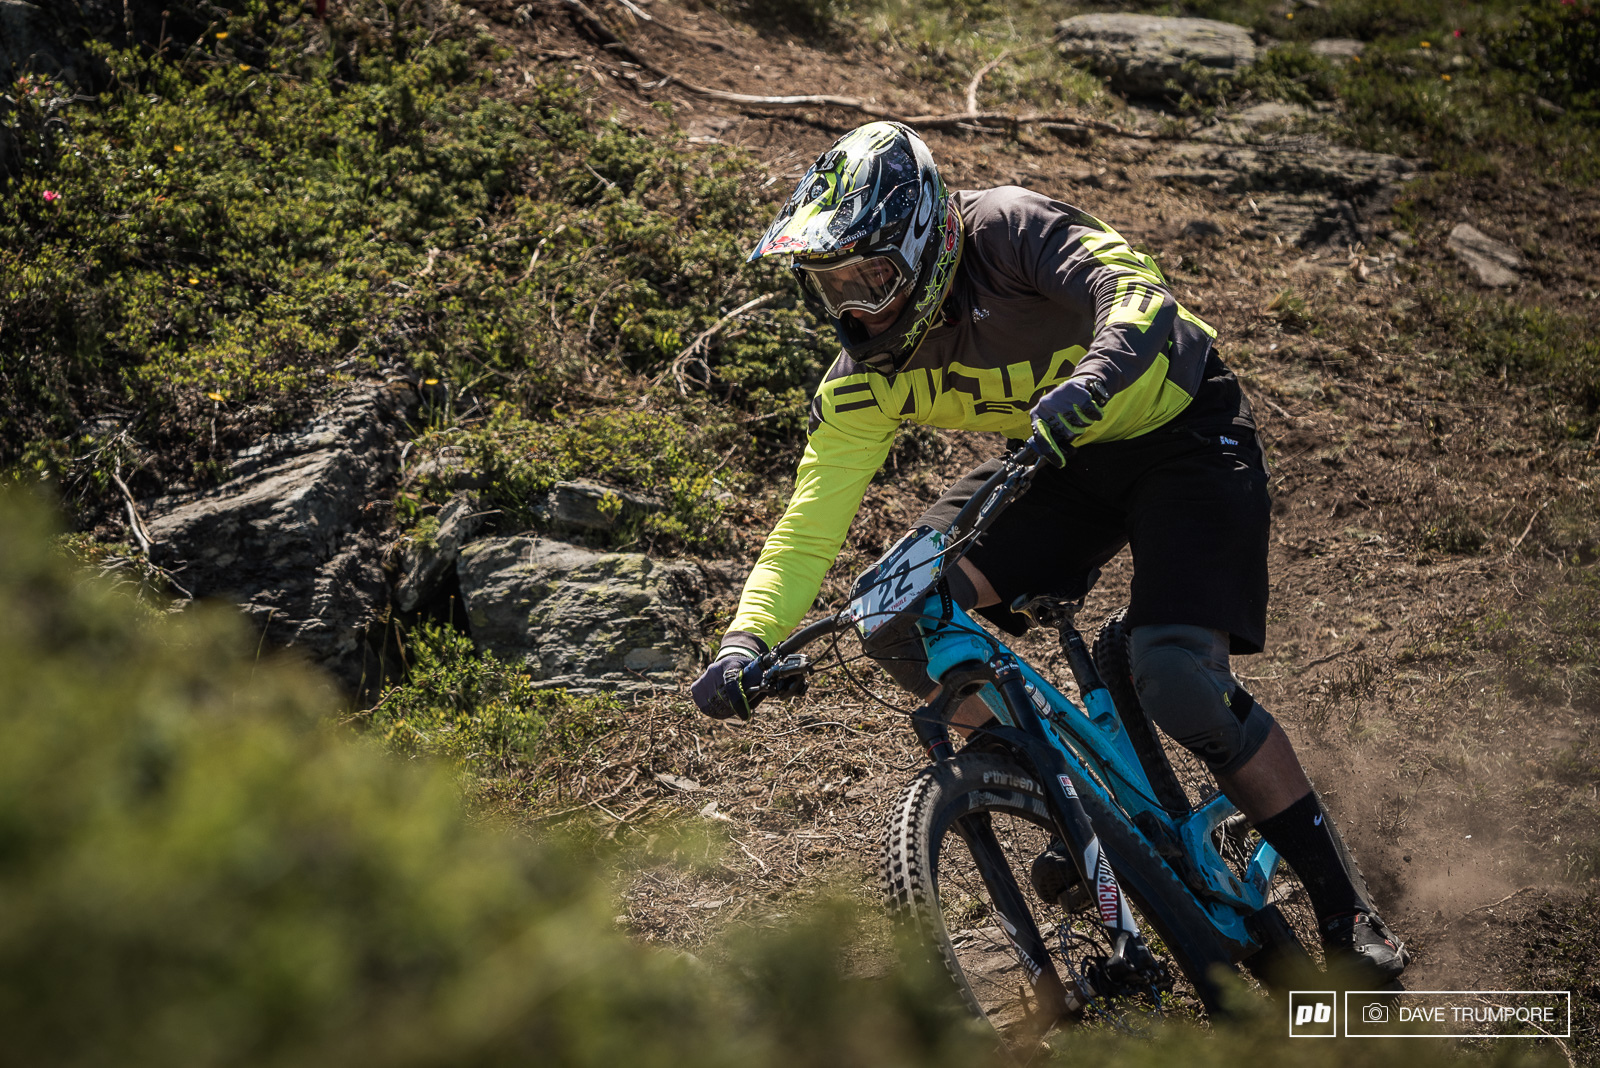 Tony Ferreiro is always a threat on the long DH style endure races and is currently sitting 11th in front of a lot of heavy EWS hitter.